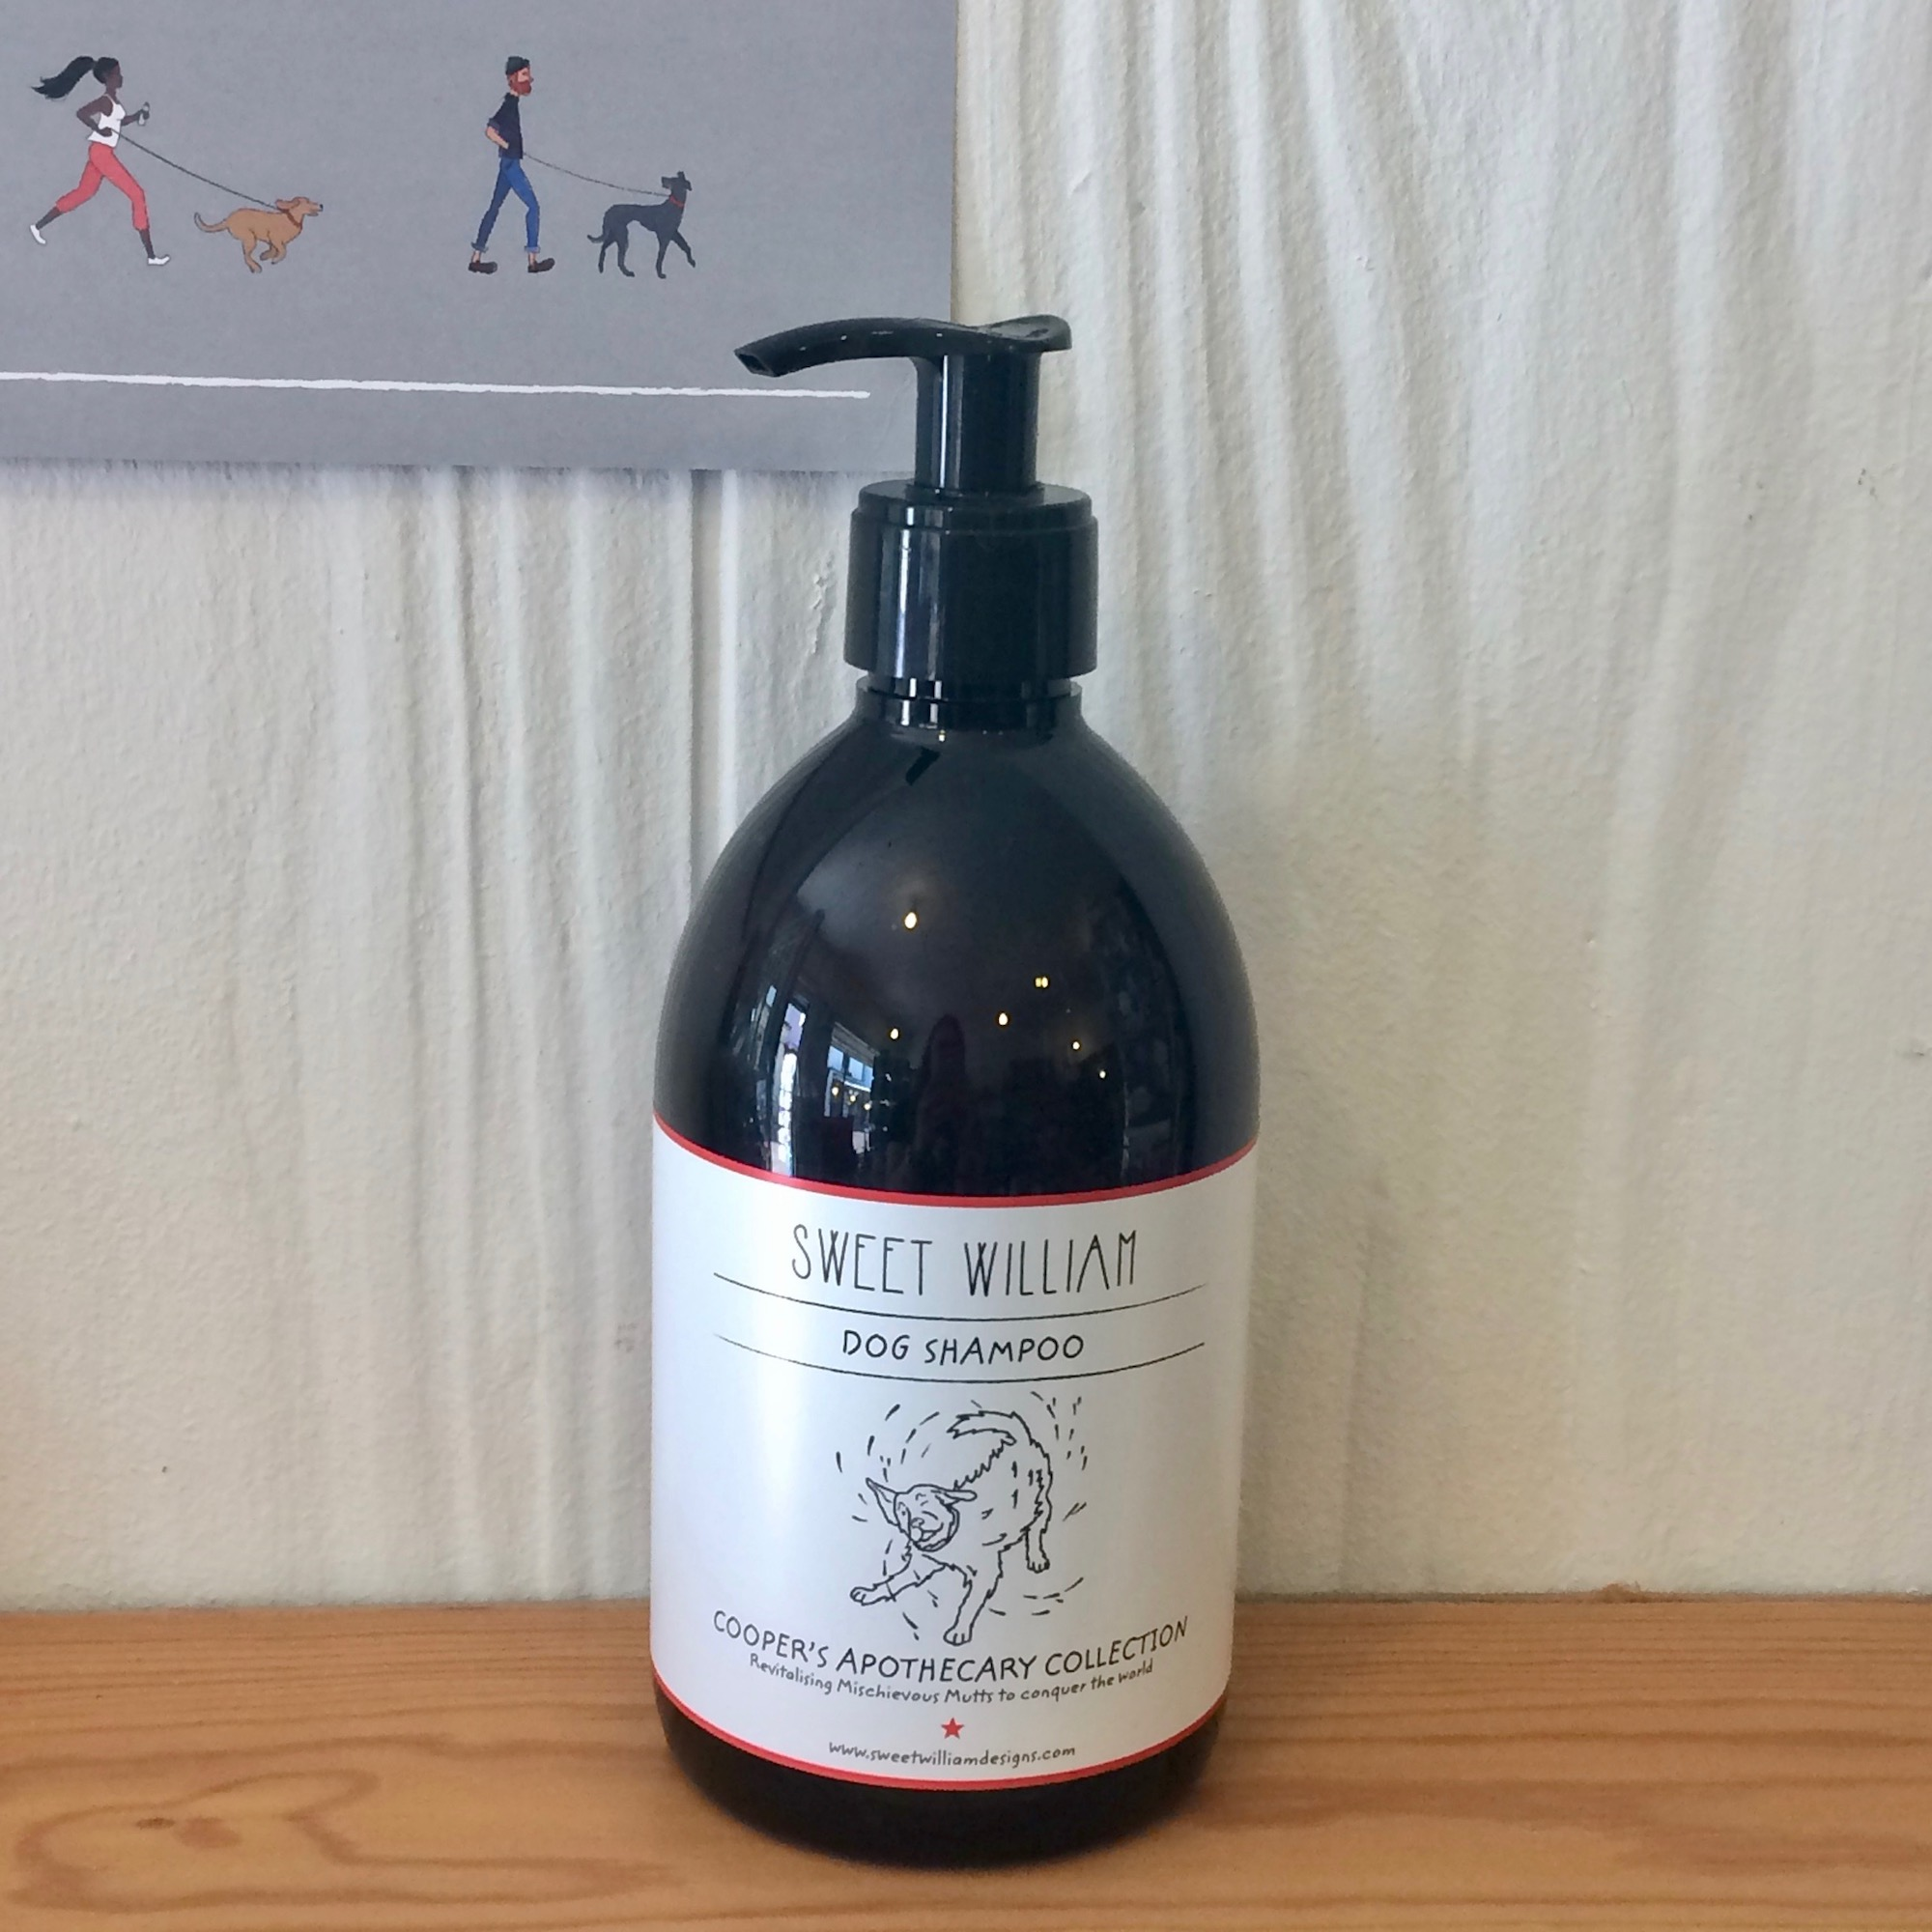 Sweet William Dog Shampoo